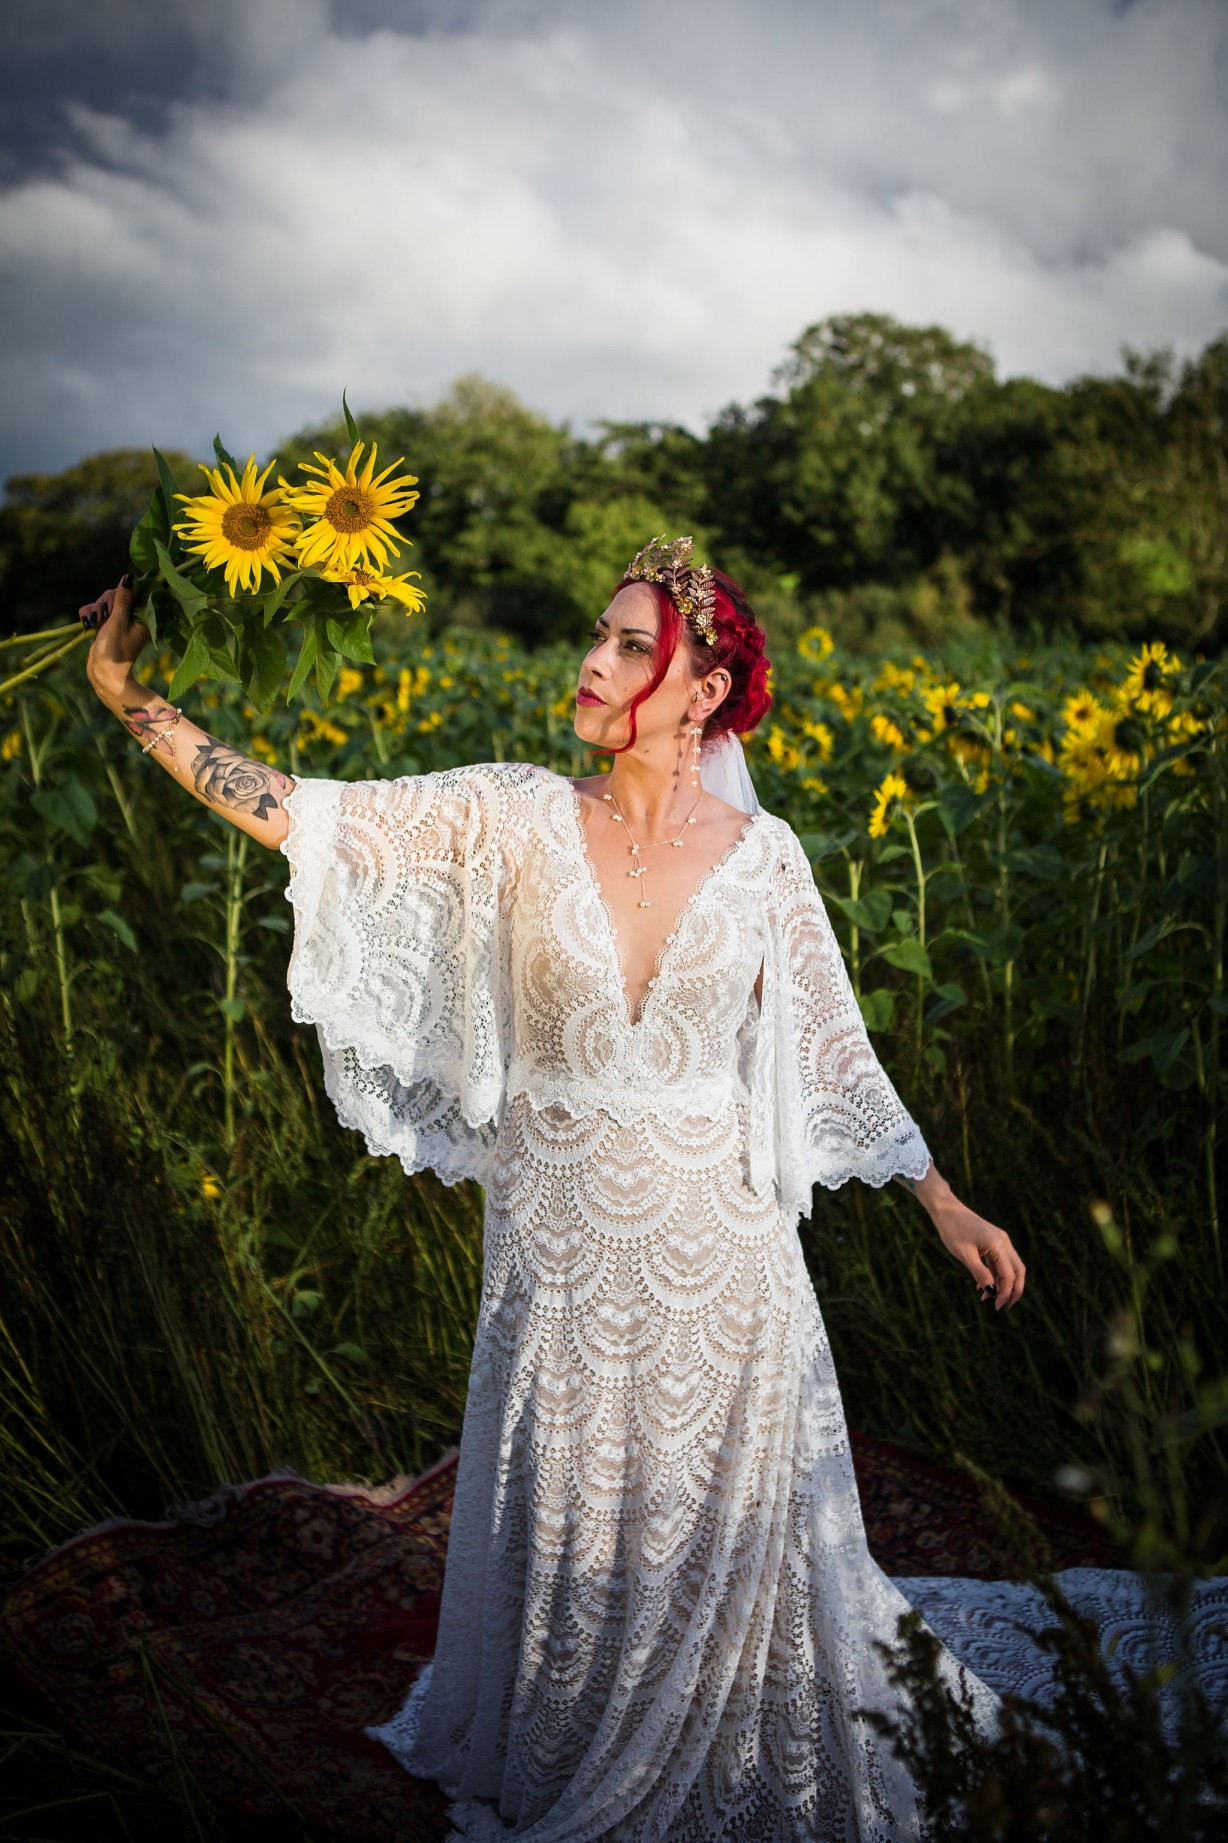 sunflower themed wedding - unconventional wedding - sunflower wedding - autumn wedding - alternative wedding planning - bride in field with sunflowers